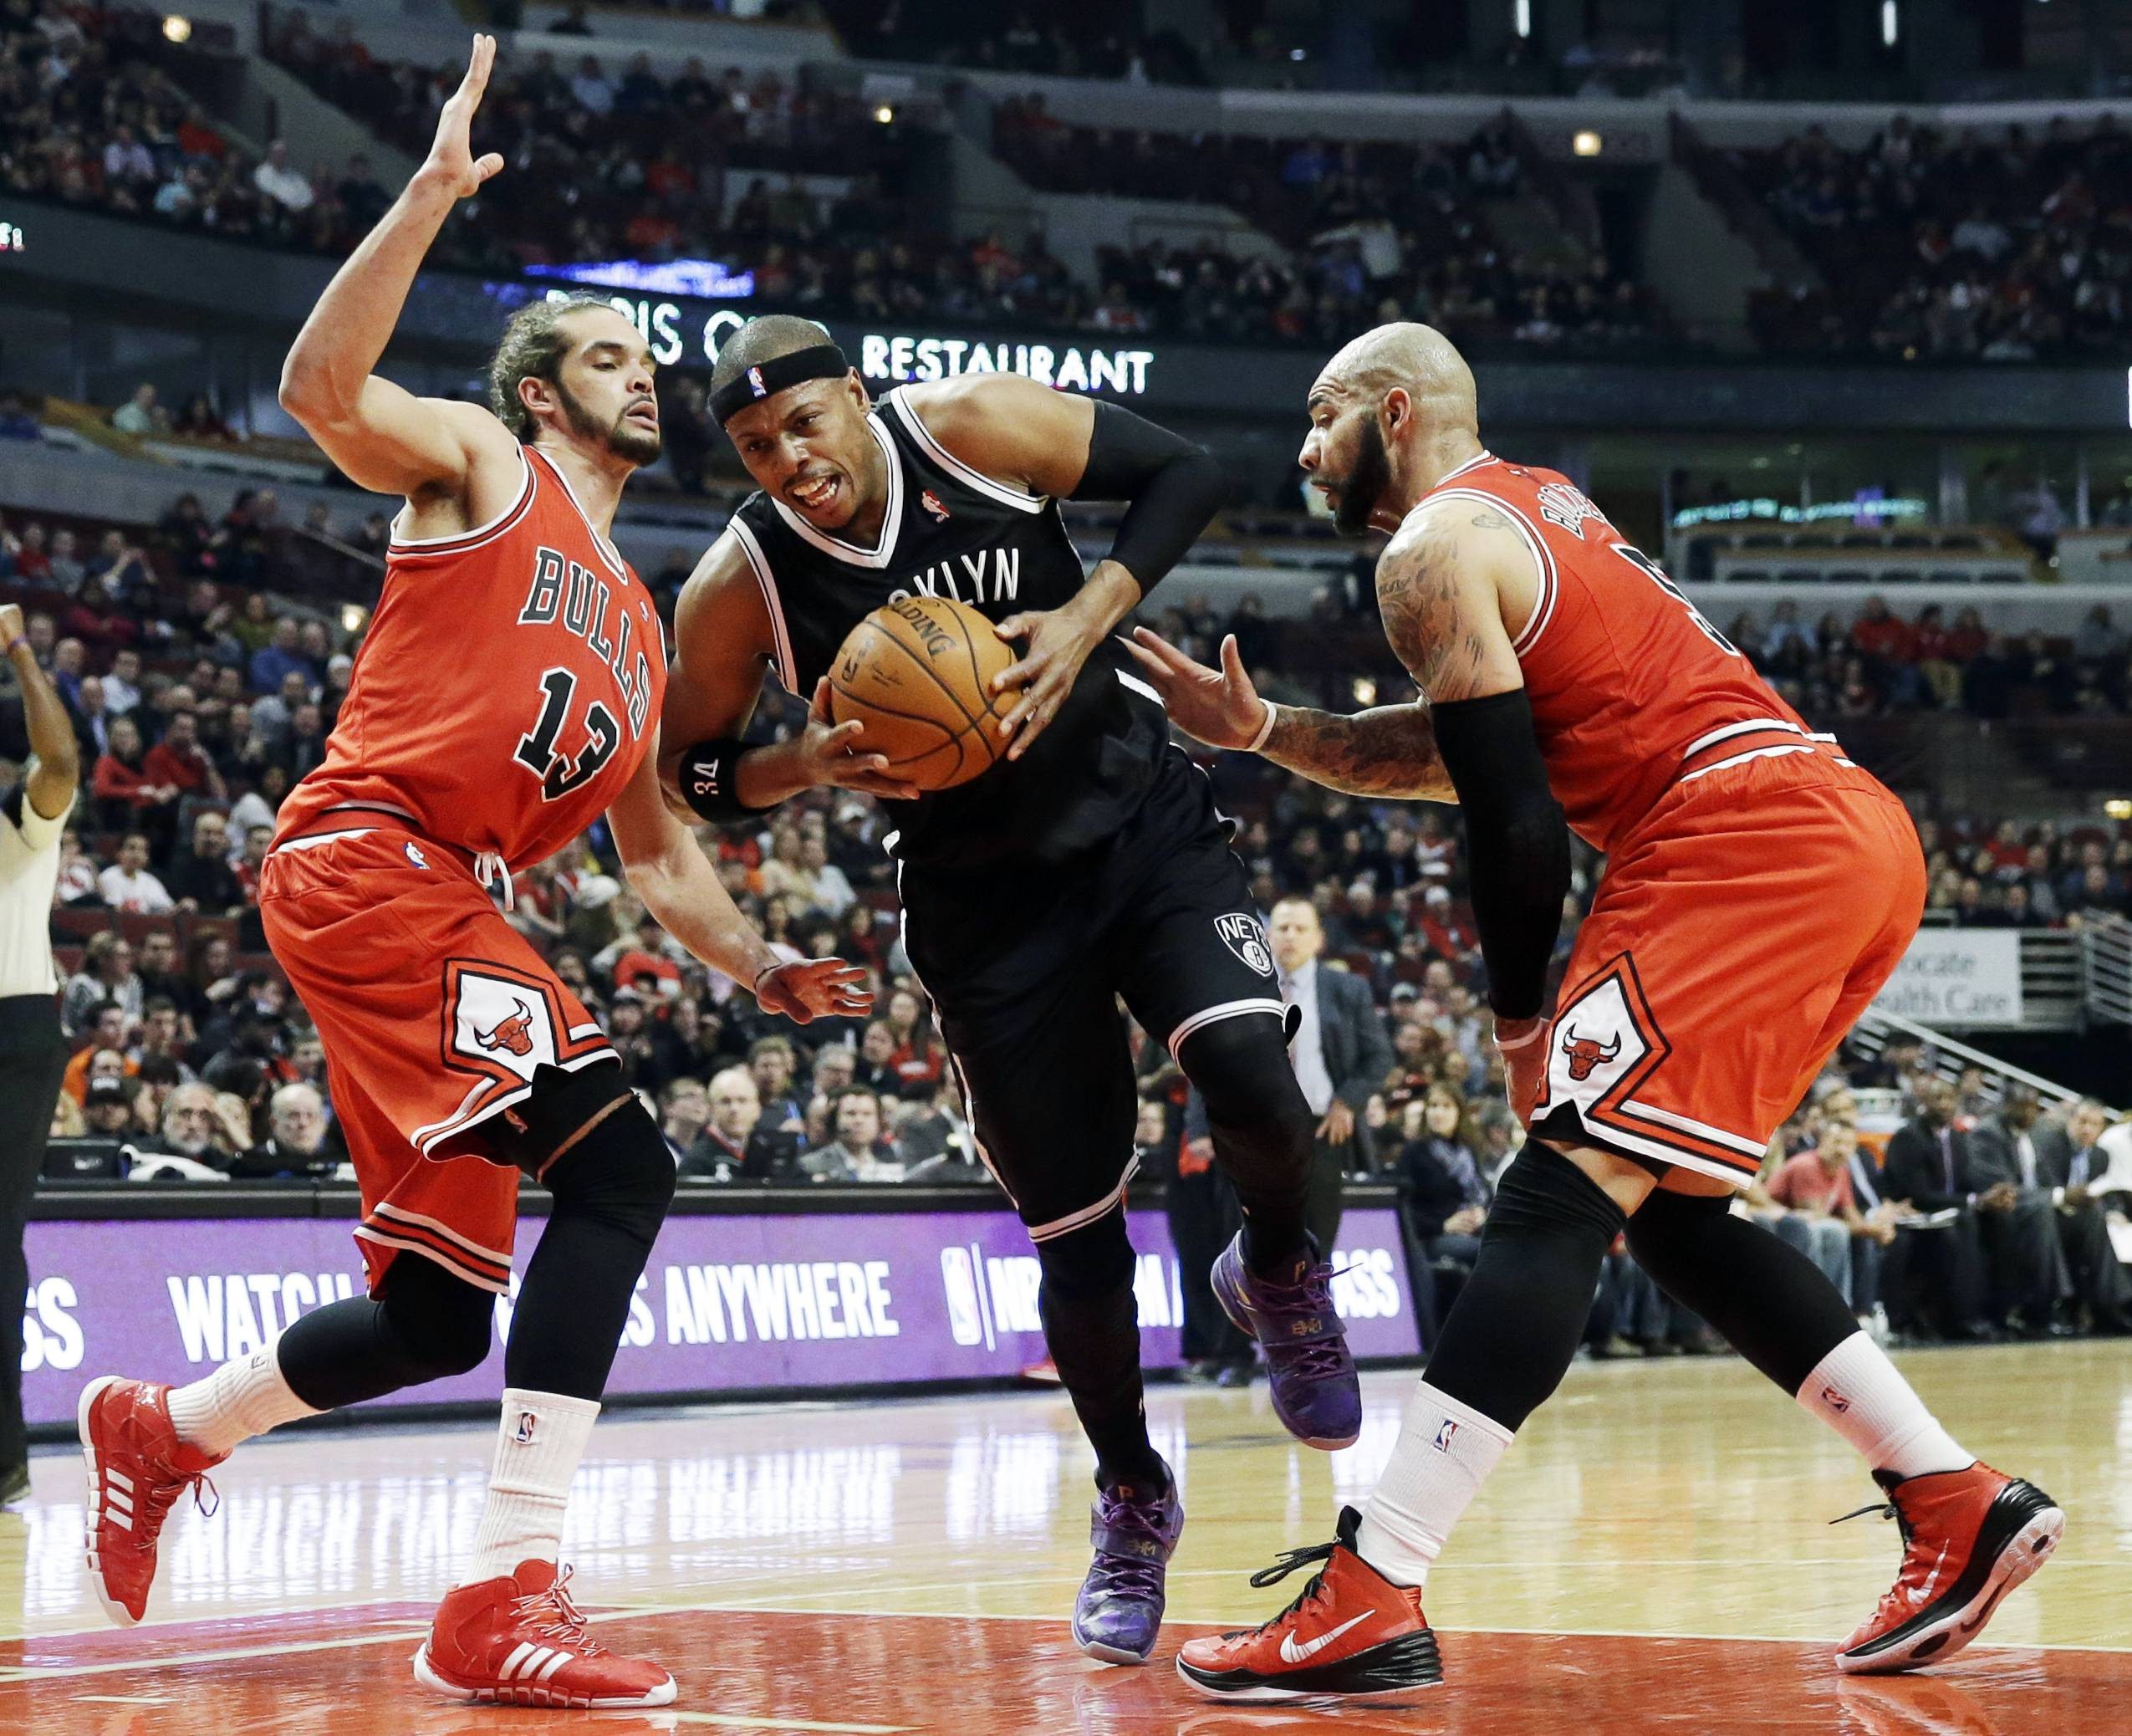 Brooklyn Nets forward Paul Pierce, center, drives to the basket as Chicago Bulls center Joakim Noah, left, and forward Carlos Boozer guard during the first half of an NBA basketball game in Chicago on Thursday, Feb. 13, 2014.